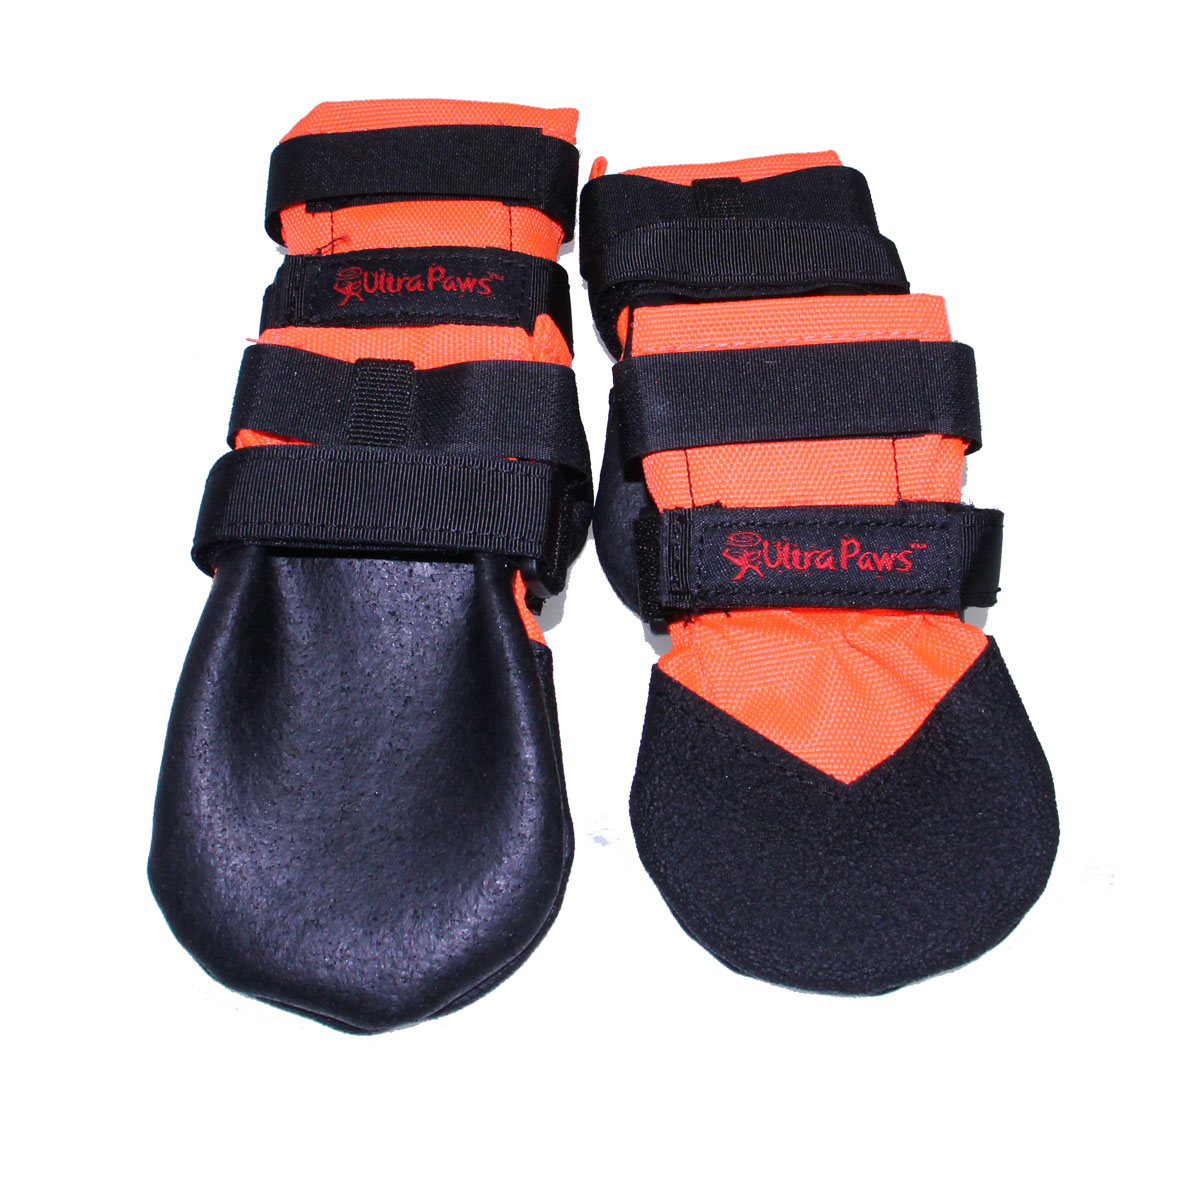 ultra paws rugged boots orange at baxterboo